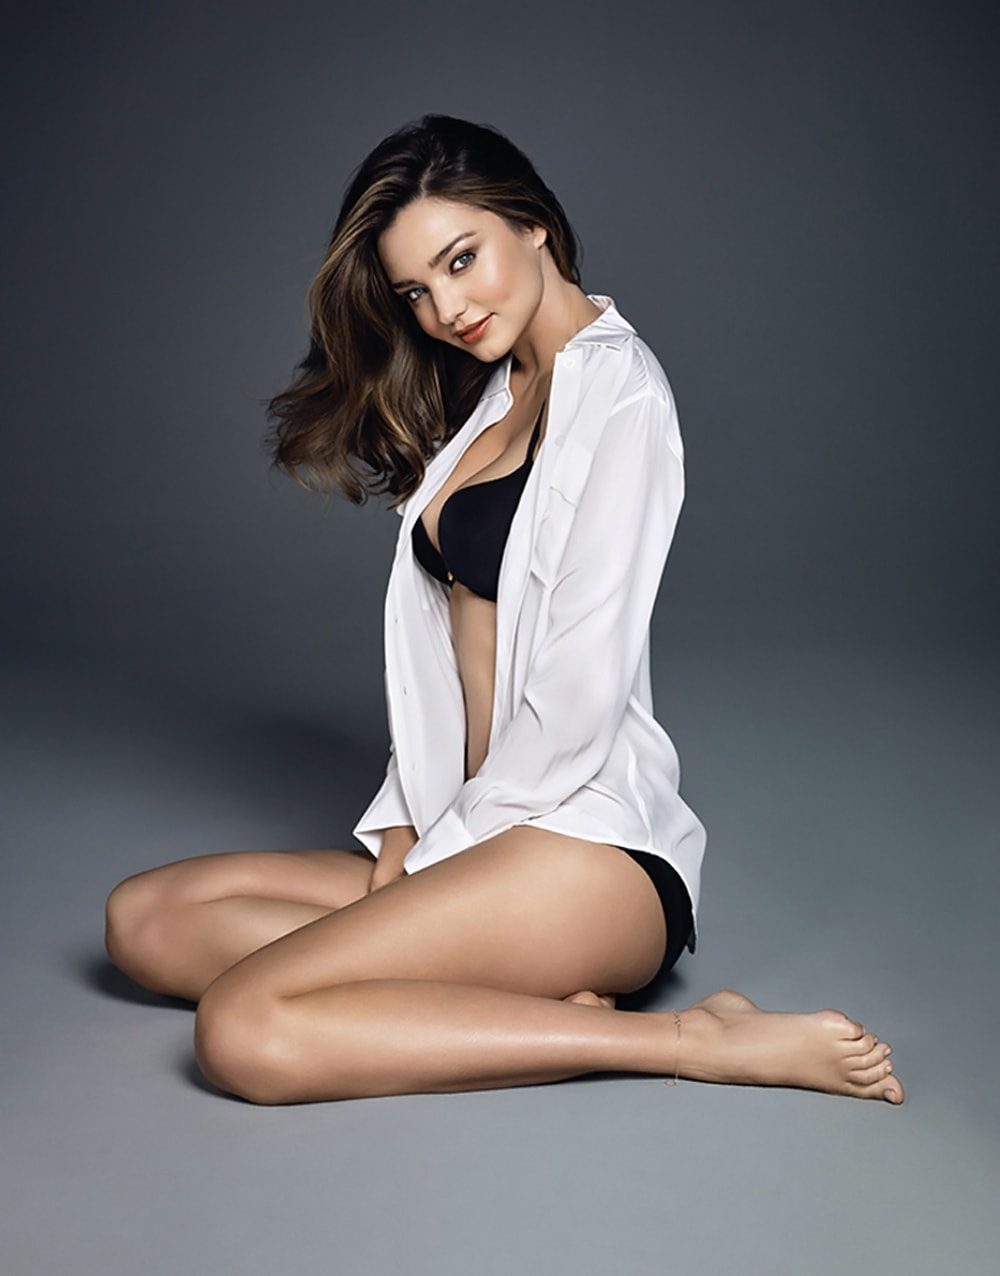 Miranda Kerr hot Bare Feet